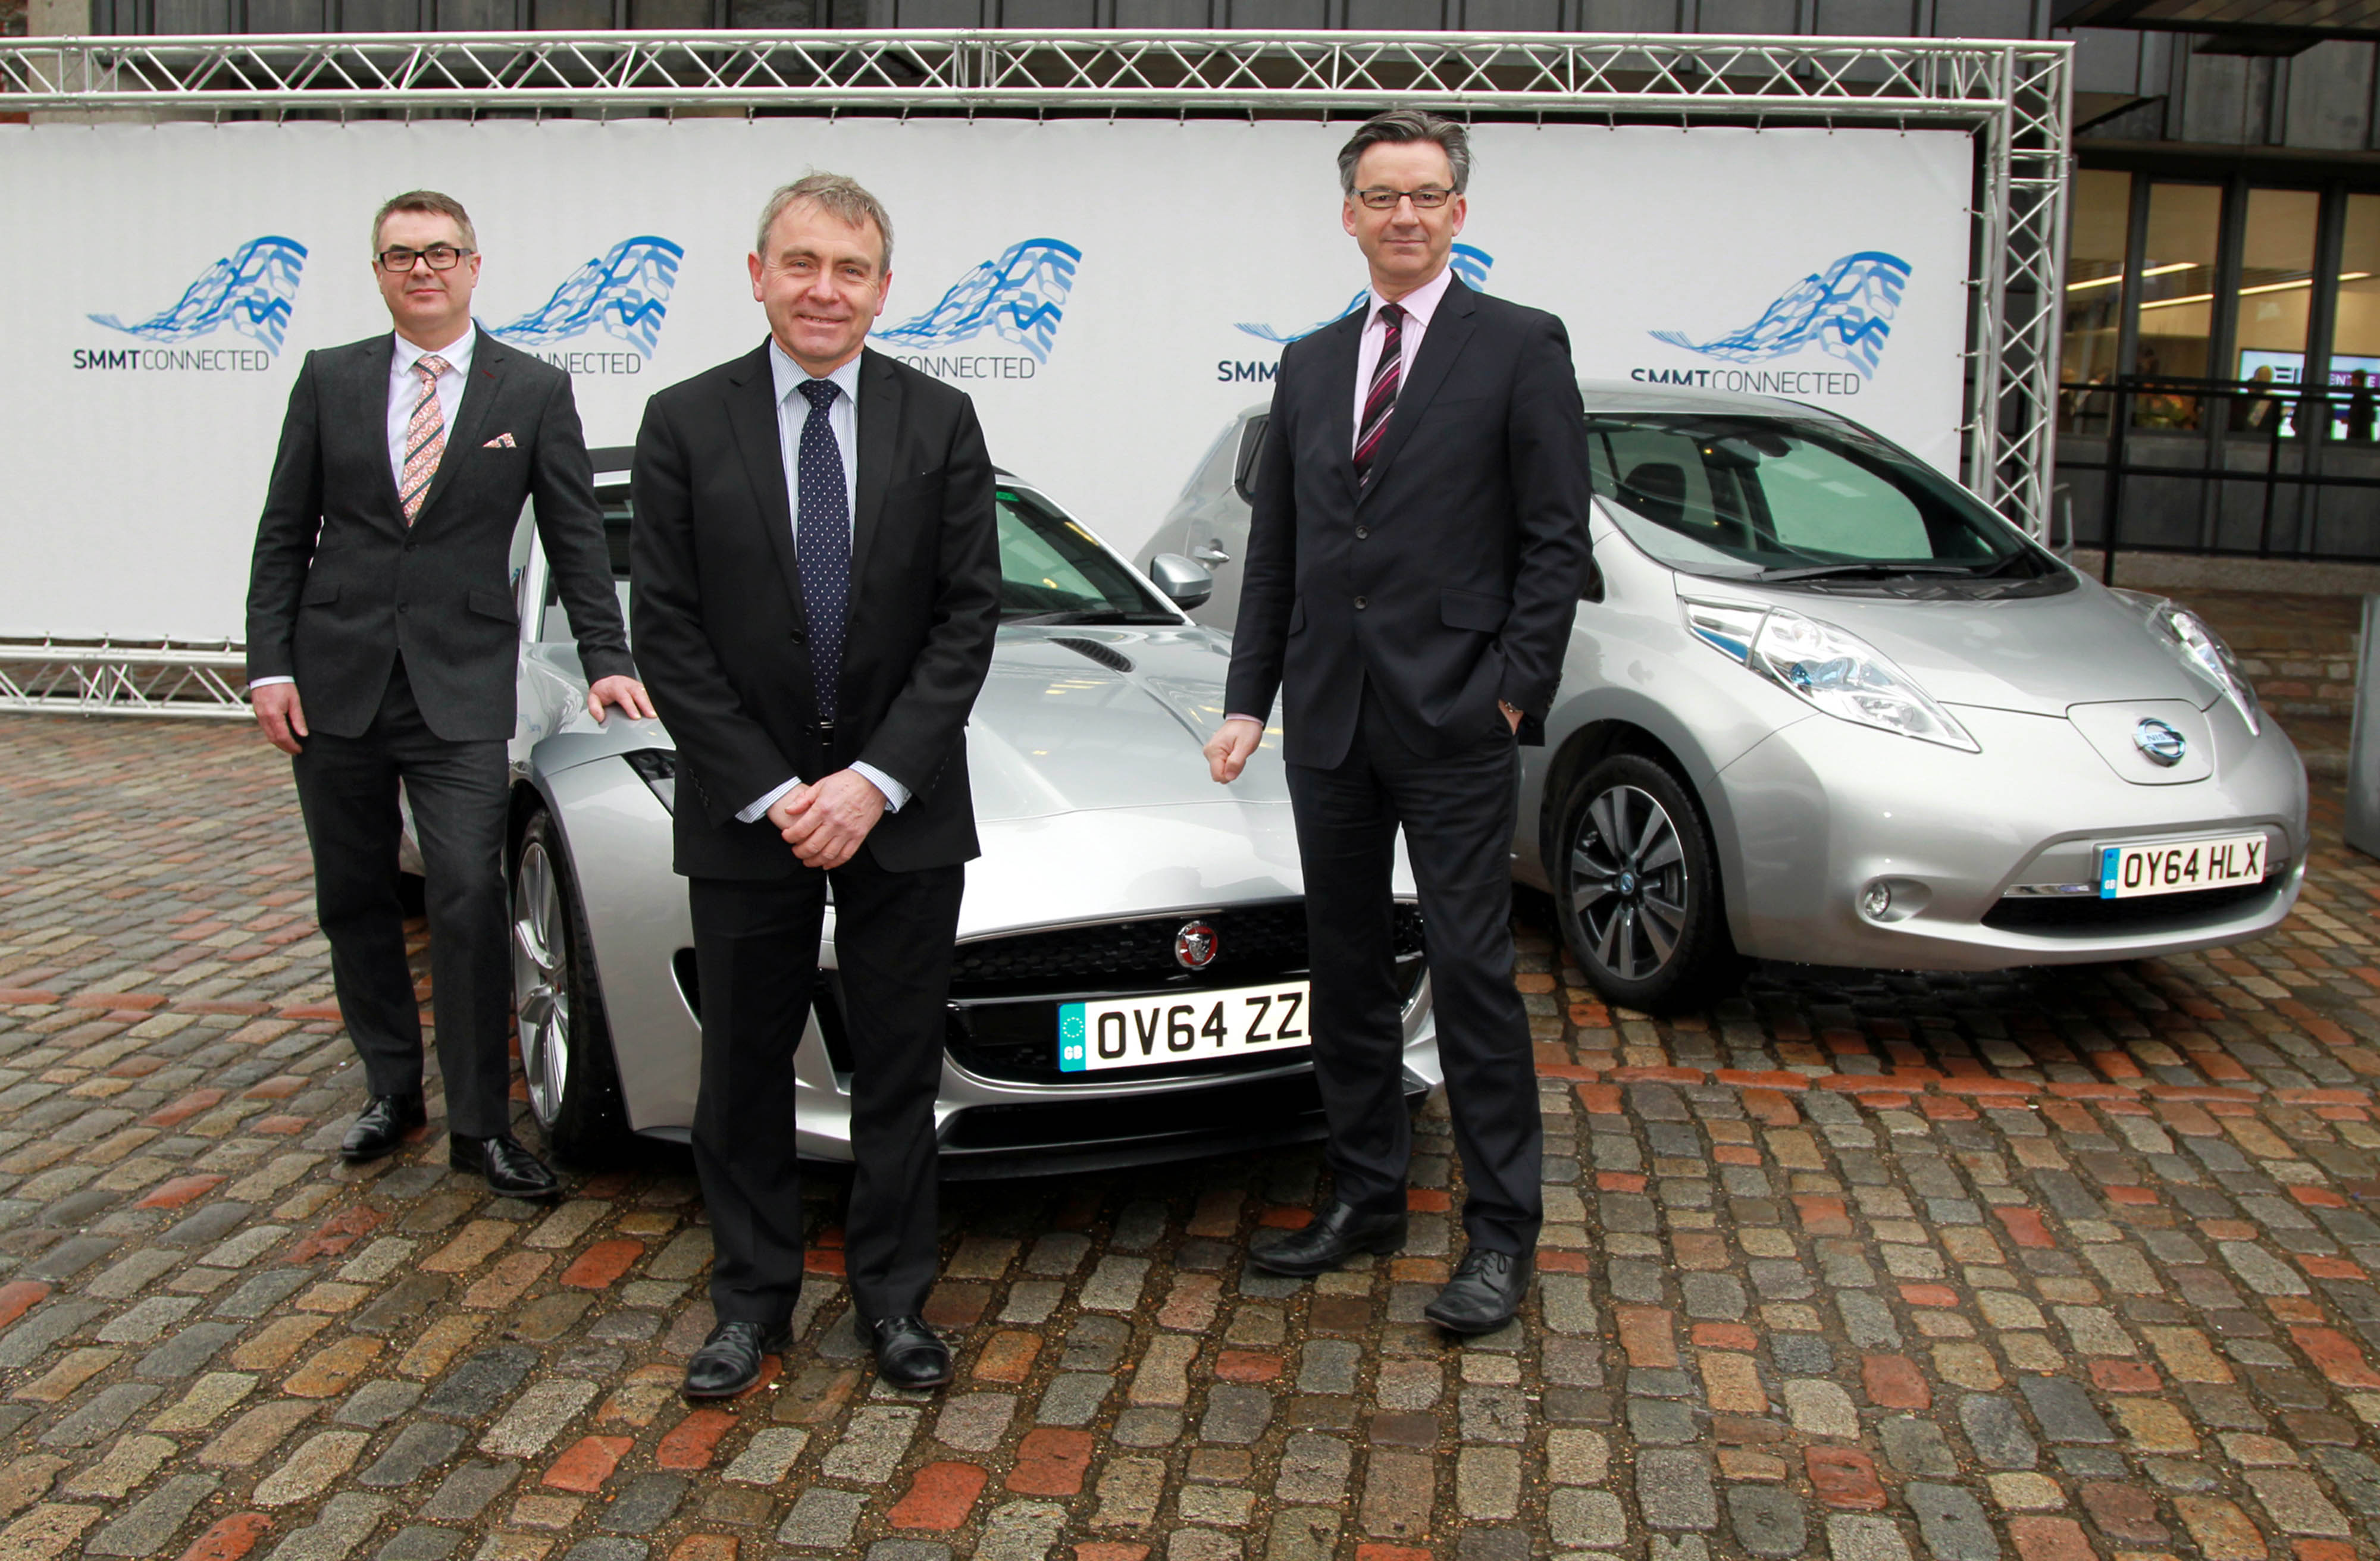 EDITORIAL USE ONLY Mike Bell, Global Connected Car Director at Jaguar Land Rover, Robert Goodwill MP, Parliamentary Under-Secretary of State and Mike Hawes, SMMT Chief Executive, with a Jaguar F-type and a Nissan Leaf, ahead of the SMMTConnected conference at Queen Elizabeth II Conference Centre, London, as it is announced that the automotive industry's innovation in connected and autonomous cars is expected to create 320,000 UK jobs and generate £51 billion for the UK economy. PRESS ASSOCIATION Photo. Picture date: Thursday March 26, 2015. Photo credit should: Sean Dempsey/PA Wire